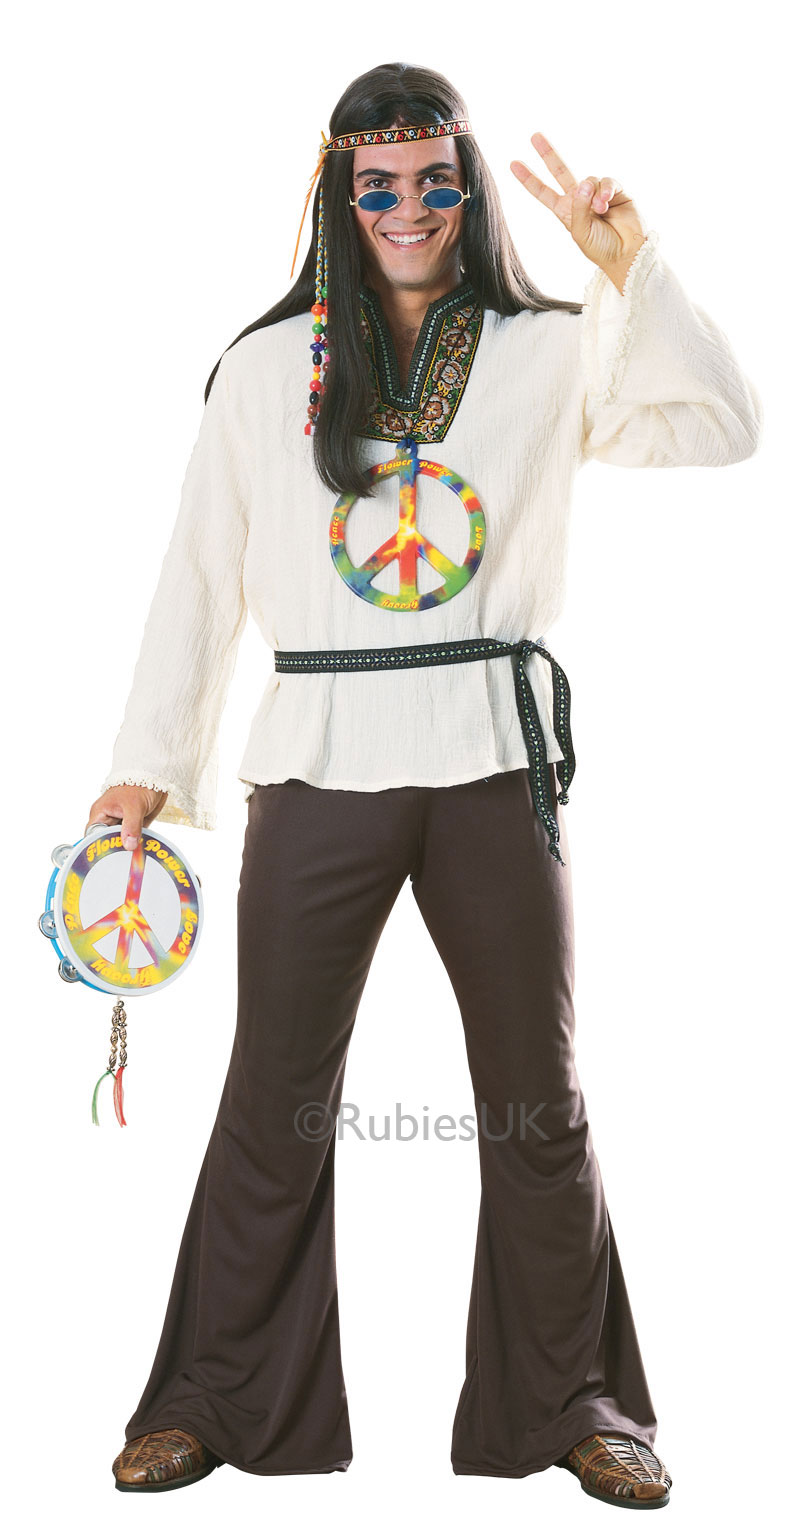 1970s Hippy HIppie Fancy Dress Costume Outfit 70s Retro Mens Male Std Or XL